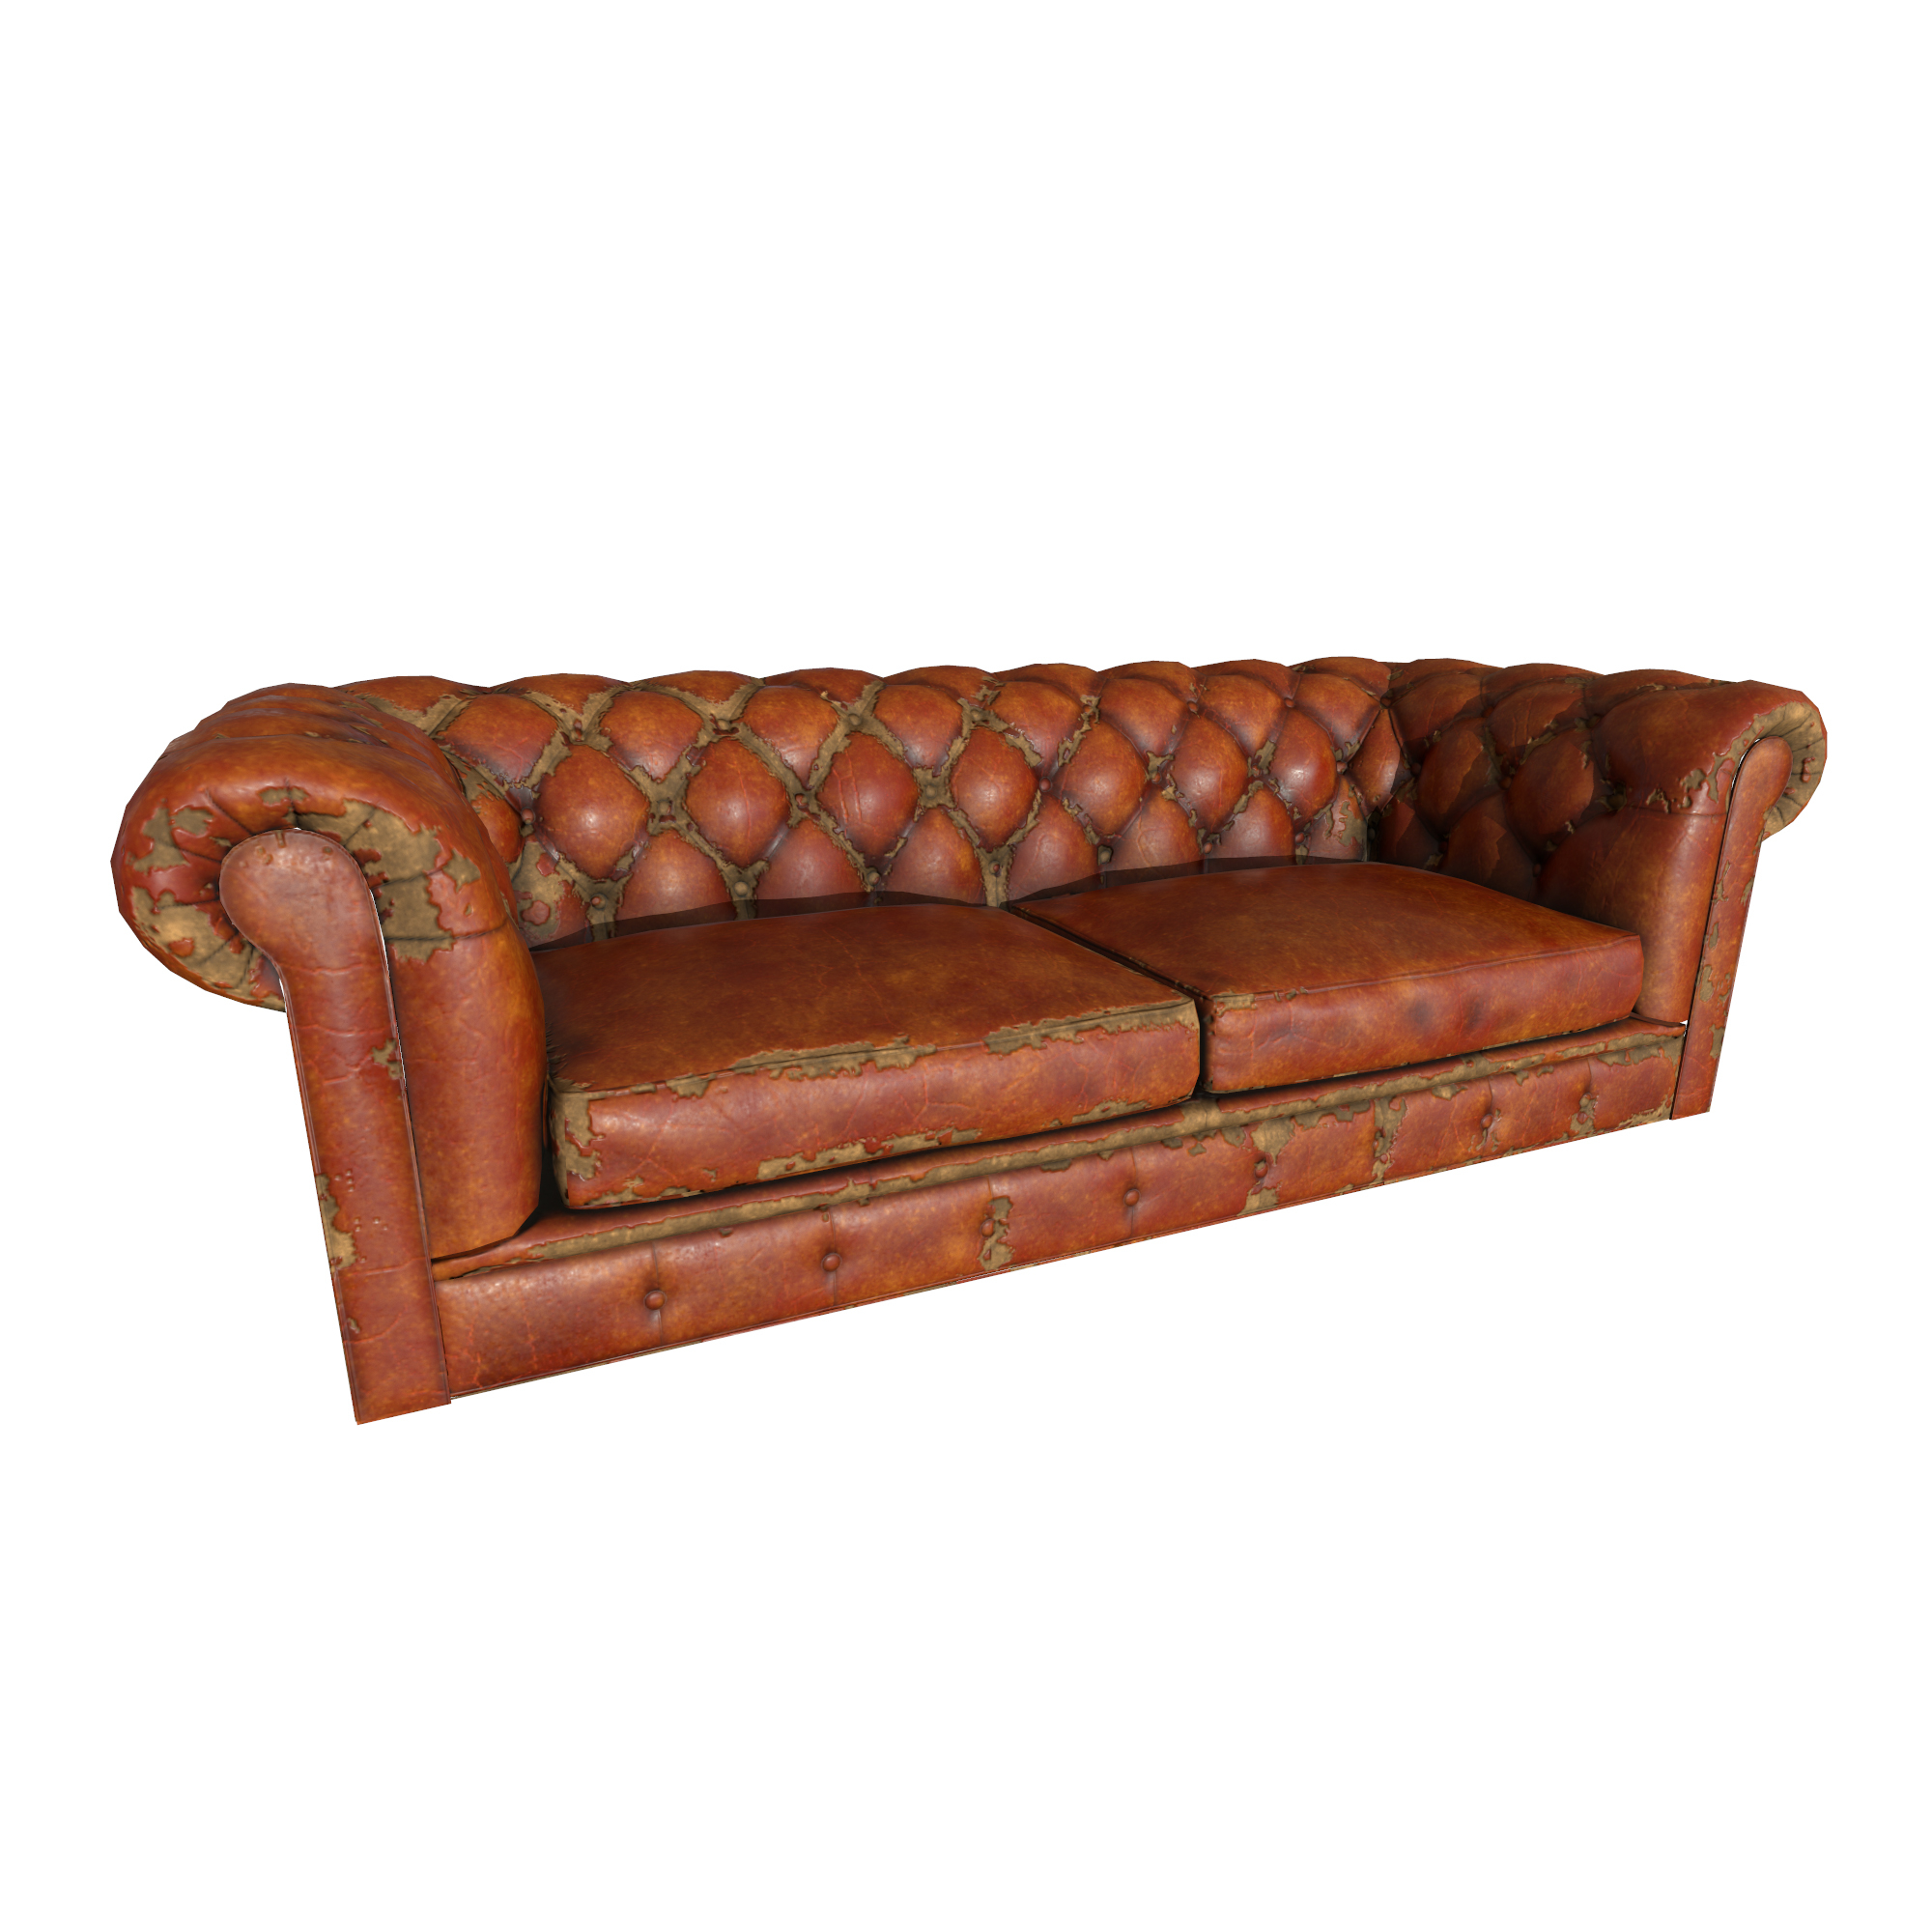 Old Leather Sofa (Game Ready)